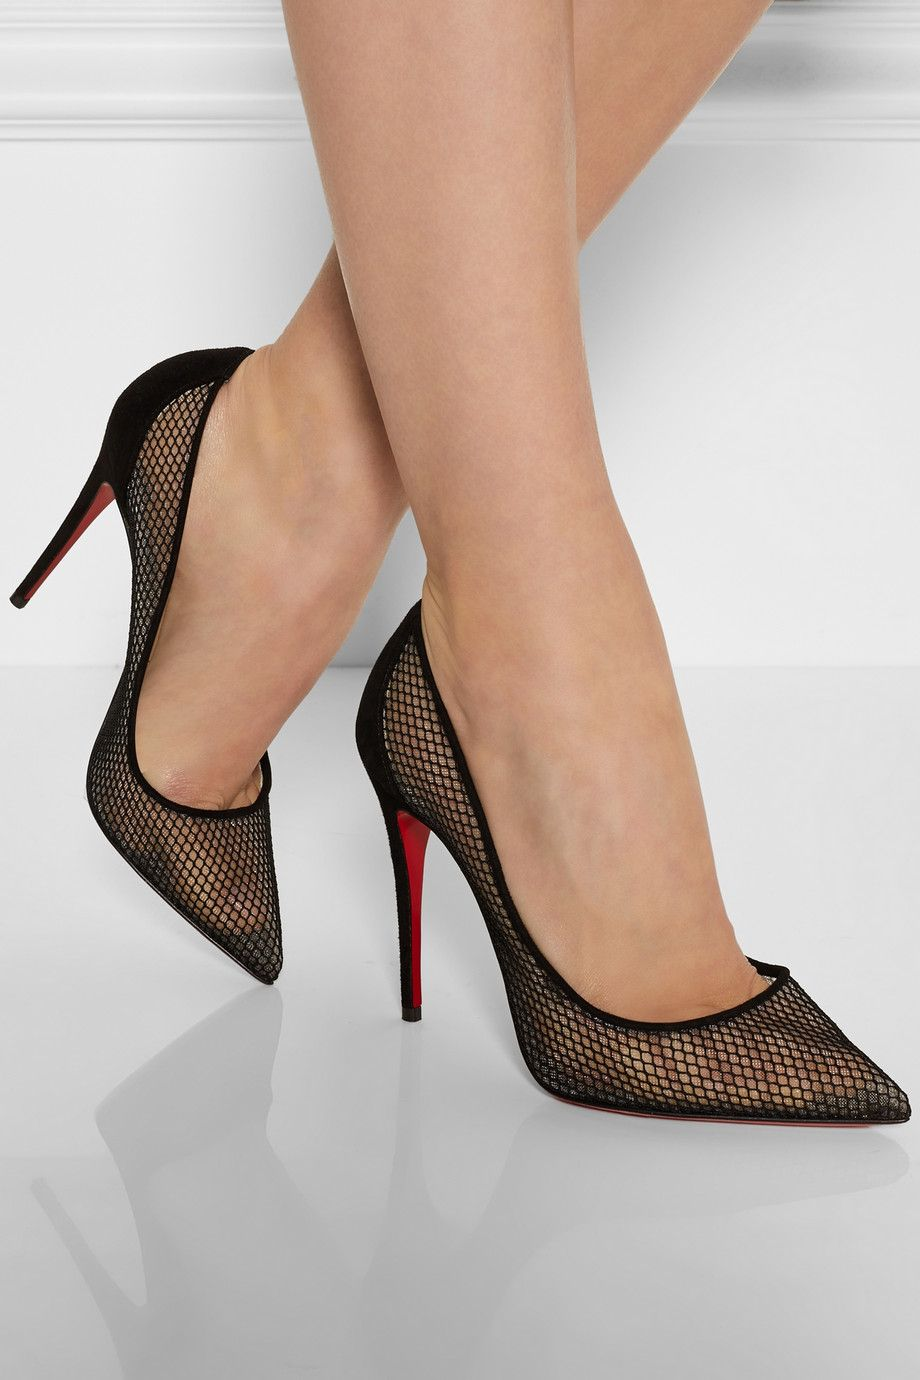 christian louboutin follies resille 100 suede trimmed. Black Bedroom Furniture Sets. Home Design Ideas